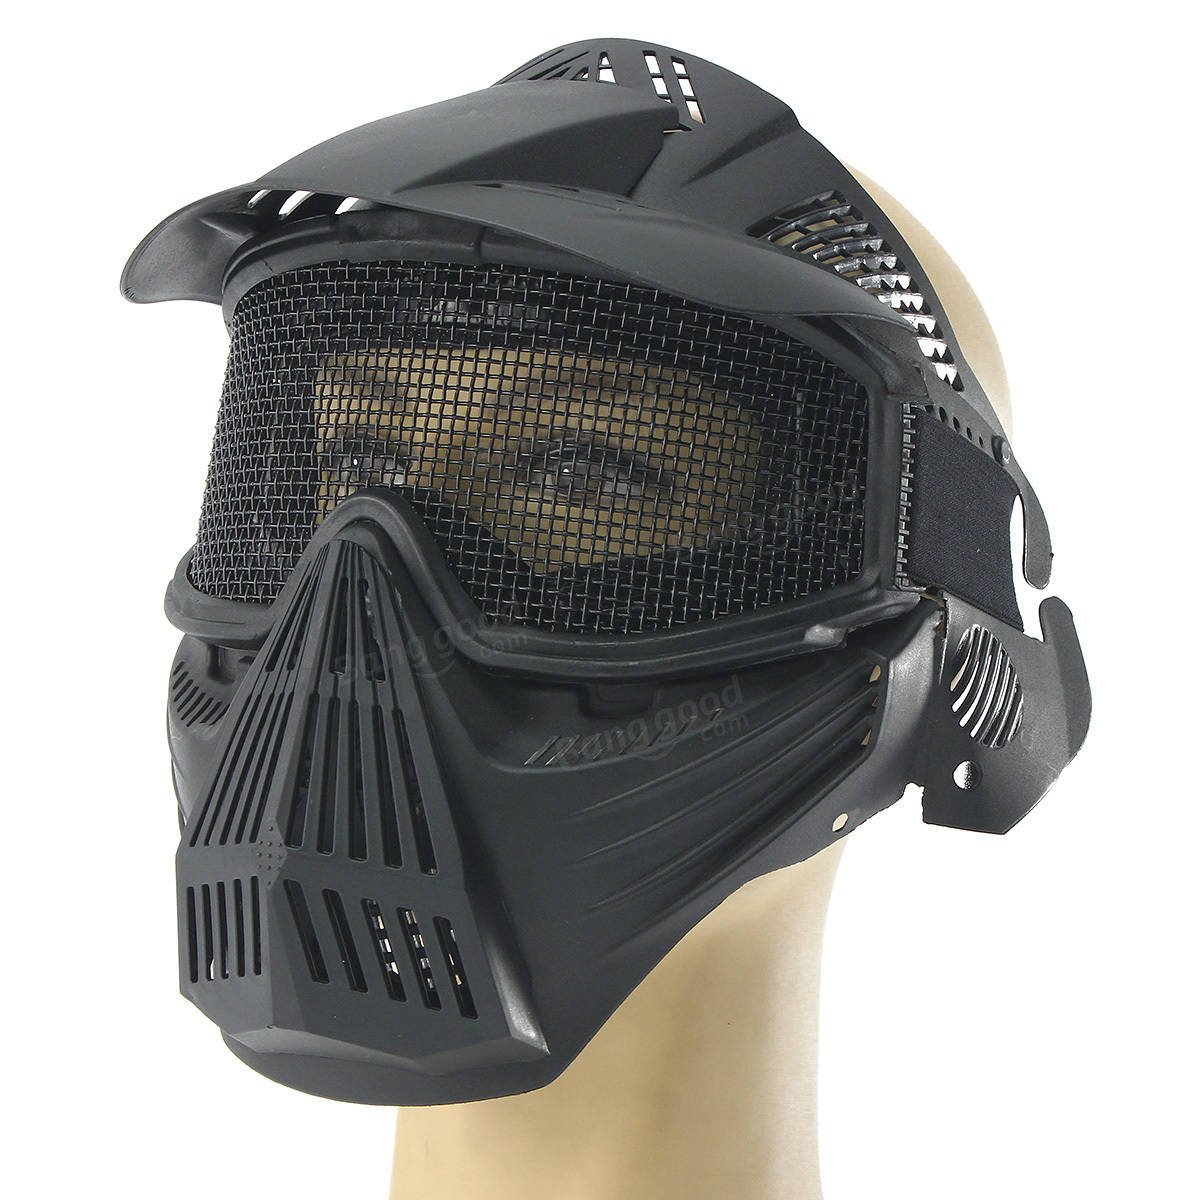 Complete Confront Cloak - Tactical Pro Mask Safety Metal Goggle Protection - Brimming Facial Expression Block Total Imbued Look Overflowing Fount Stentorian Flooded Plangent - 1PCs